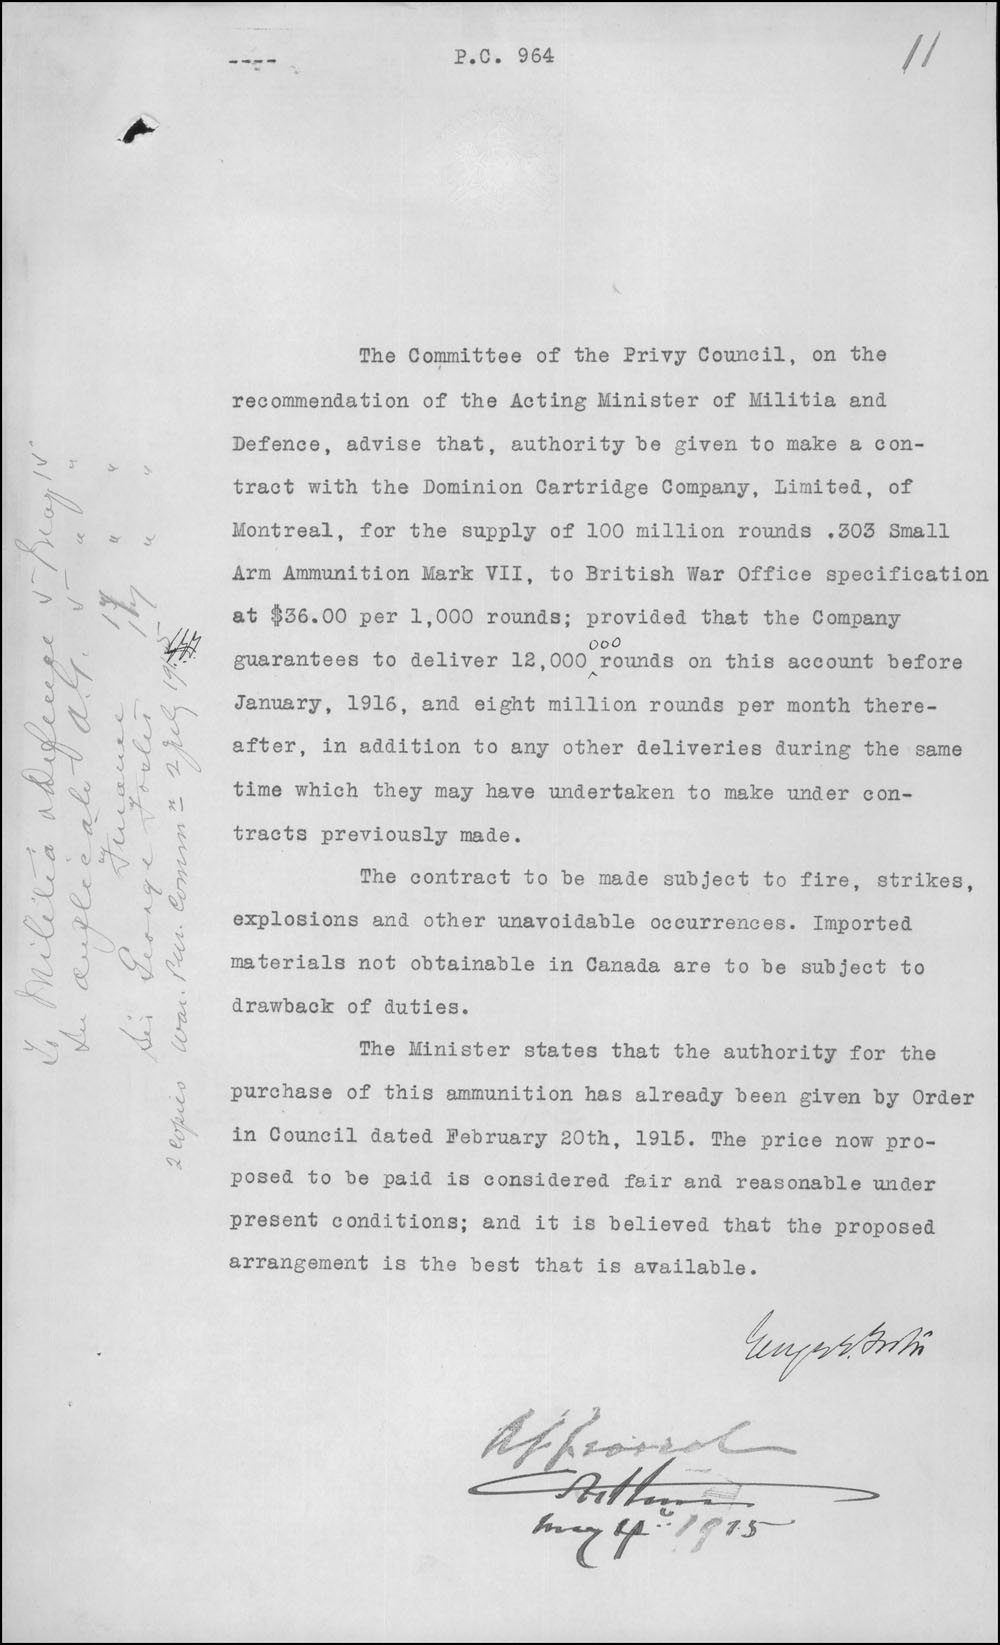 Order-in-Council approved and signed on May 4, 1915, by the Privy Council Office on the recommendation of the Department of Militia and Defence. It authorizes the establishment of a contract with the Dominion Cartridge Company Limited of Montréal for the production of 100 million .303 Mark VII munitions, according to the specifications of the British War Office, at $36 per thousand pounds.